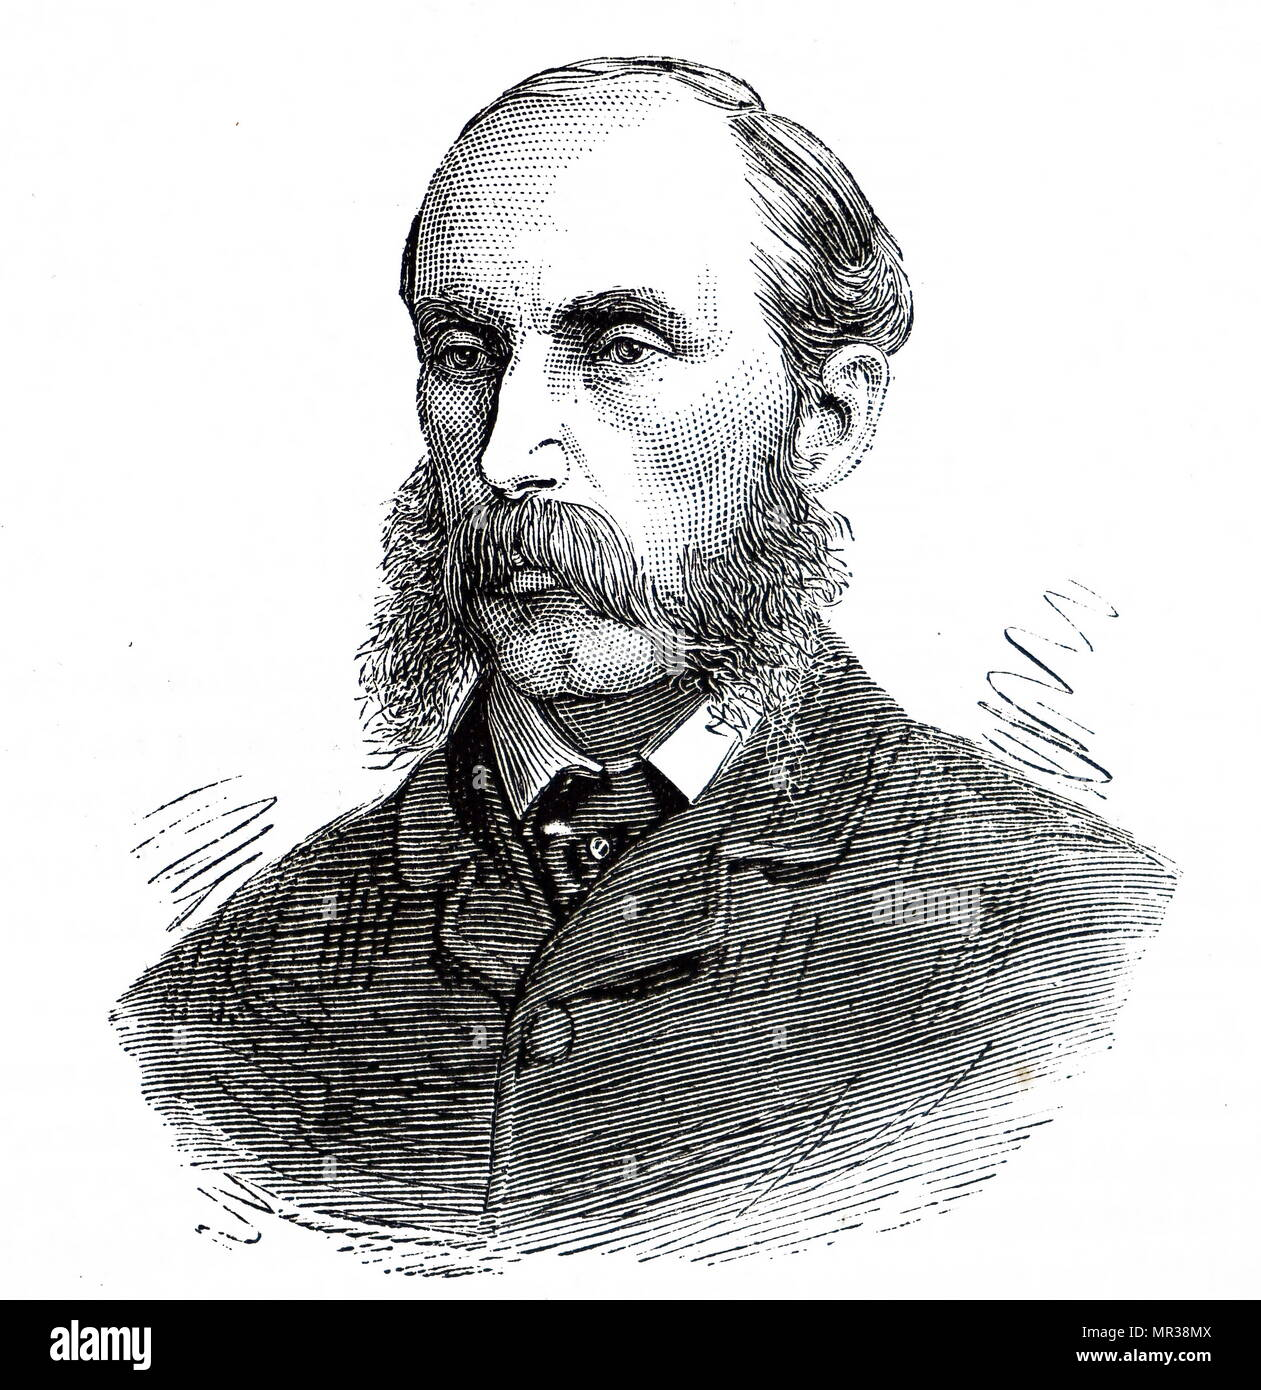 Portrait of Sir James Rankin, 1st Baronet (1842-1915) a Conservative Party politician in the United Kingdom. Dated 19th century - Stock Image